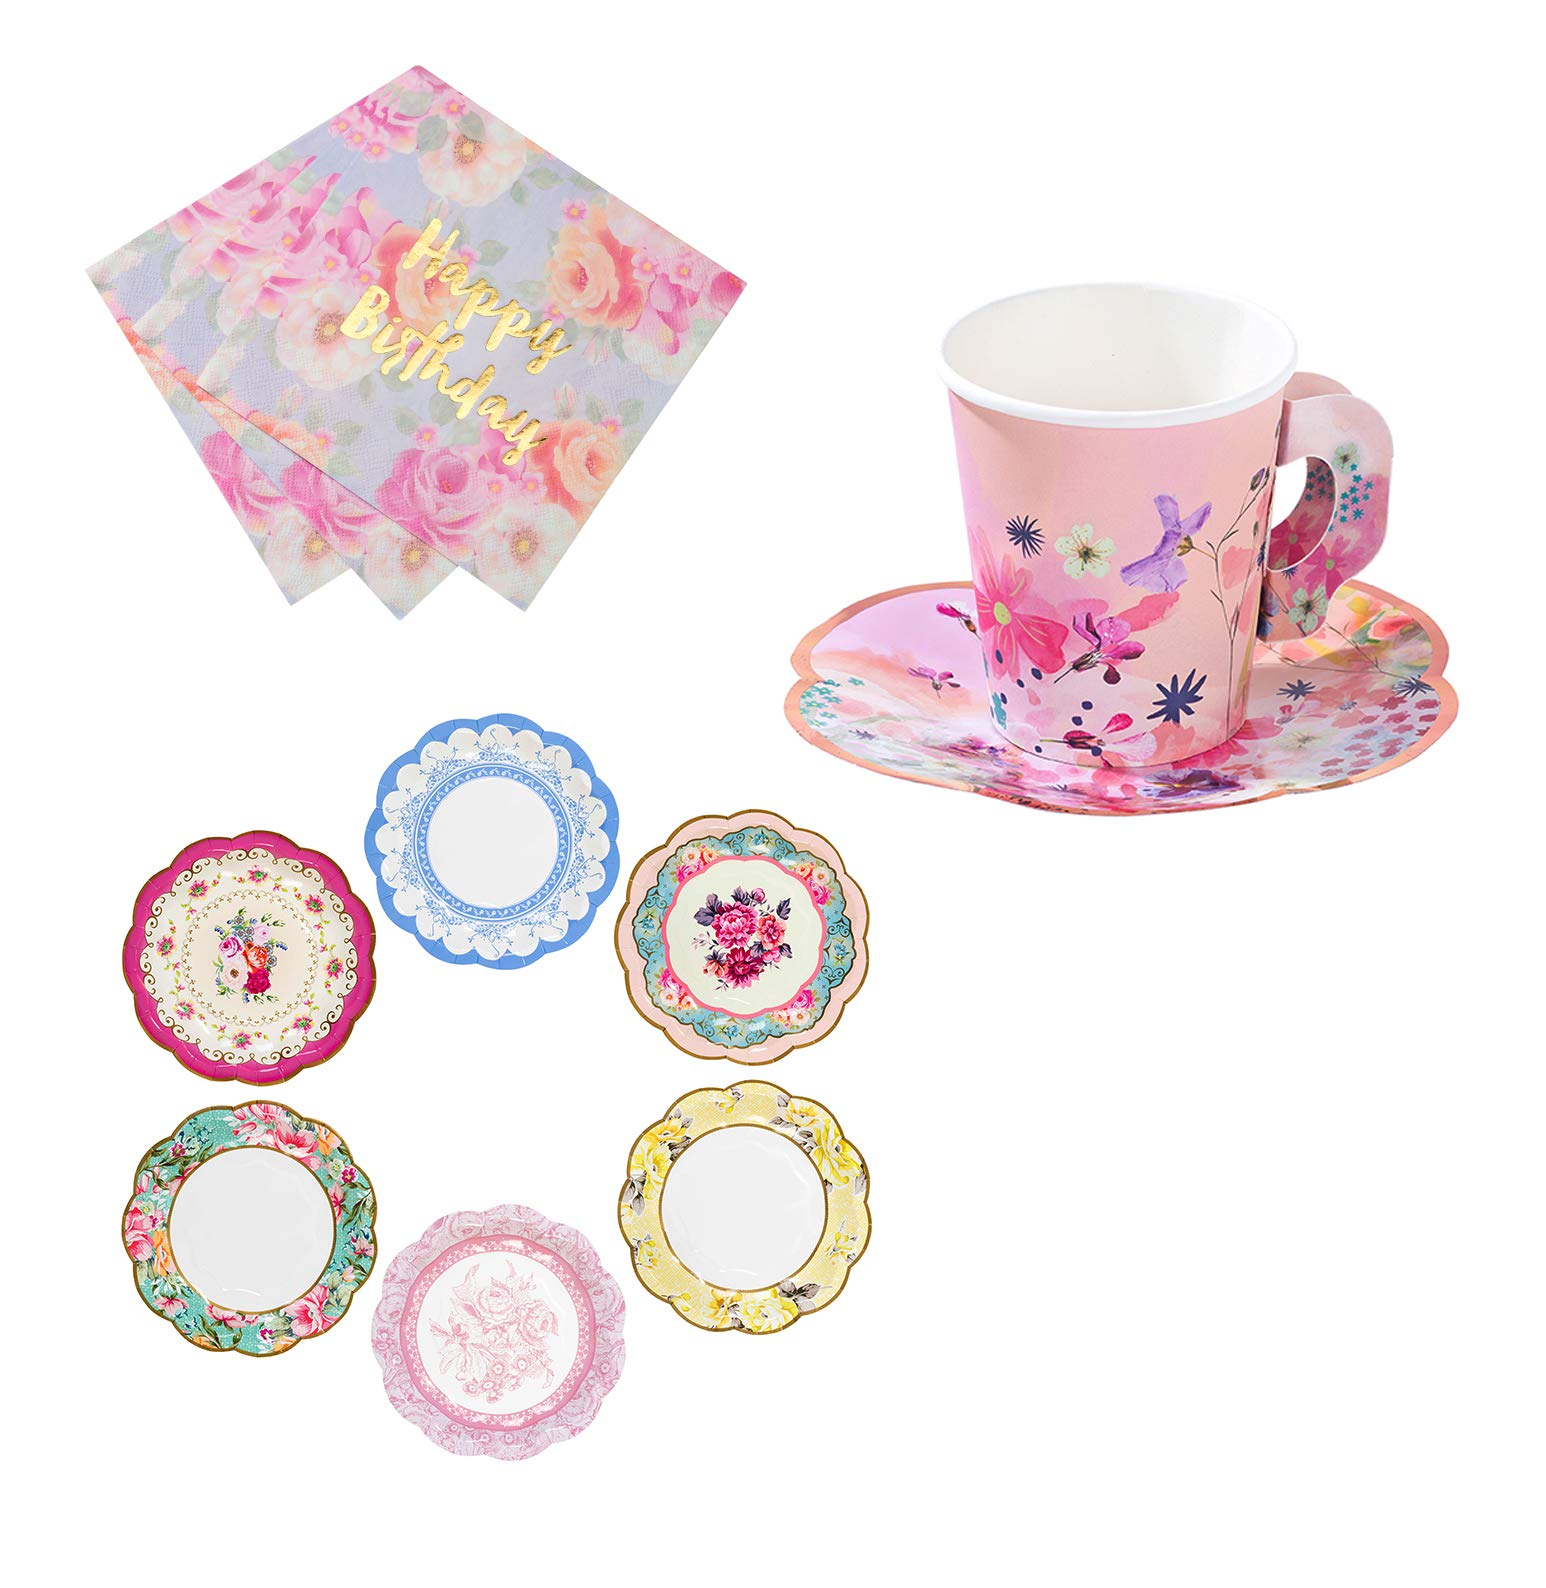 Talking Tables Vintage Tea Party Supplies for A Birthday Party | Vintage Floral Tea Cups and Saucer Sets, Paper Party Plates and Happy Birthday Napkins